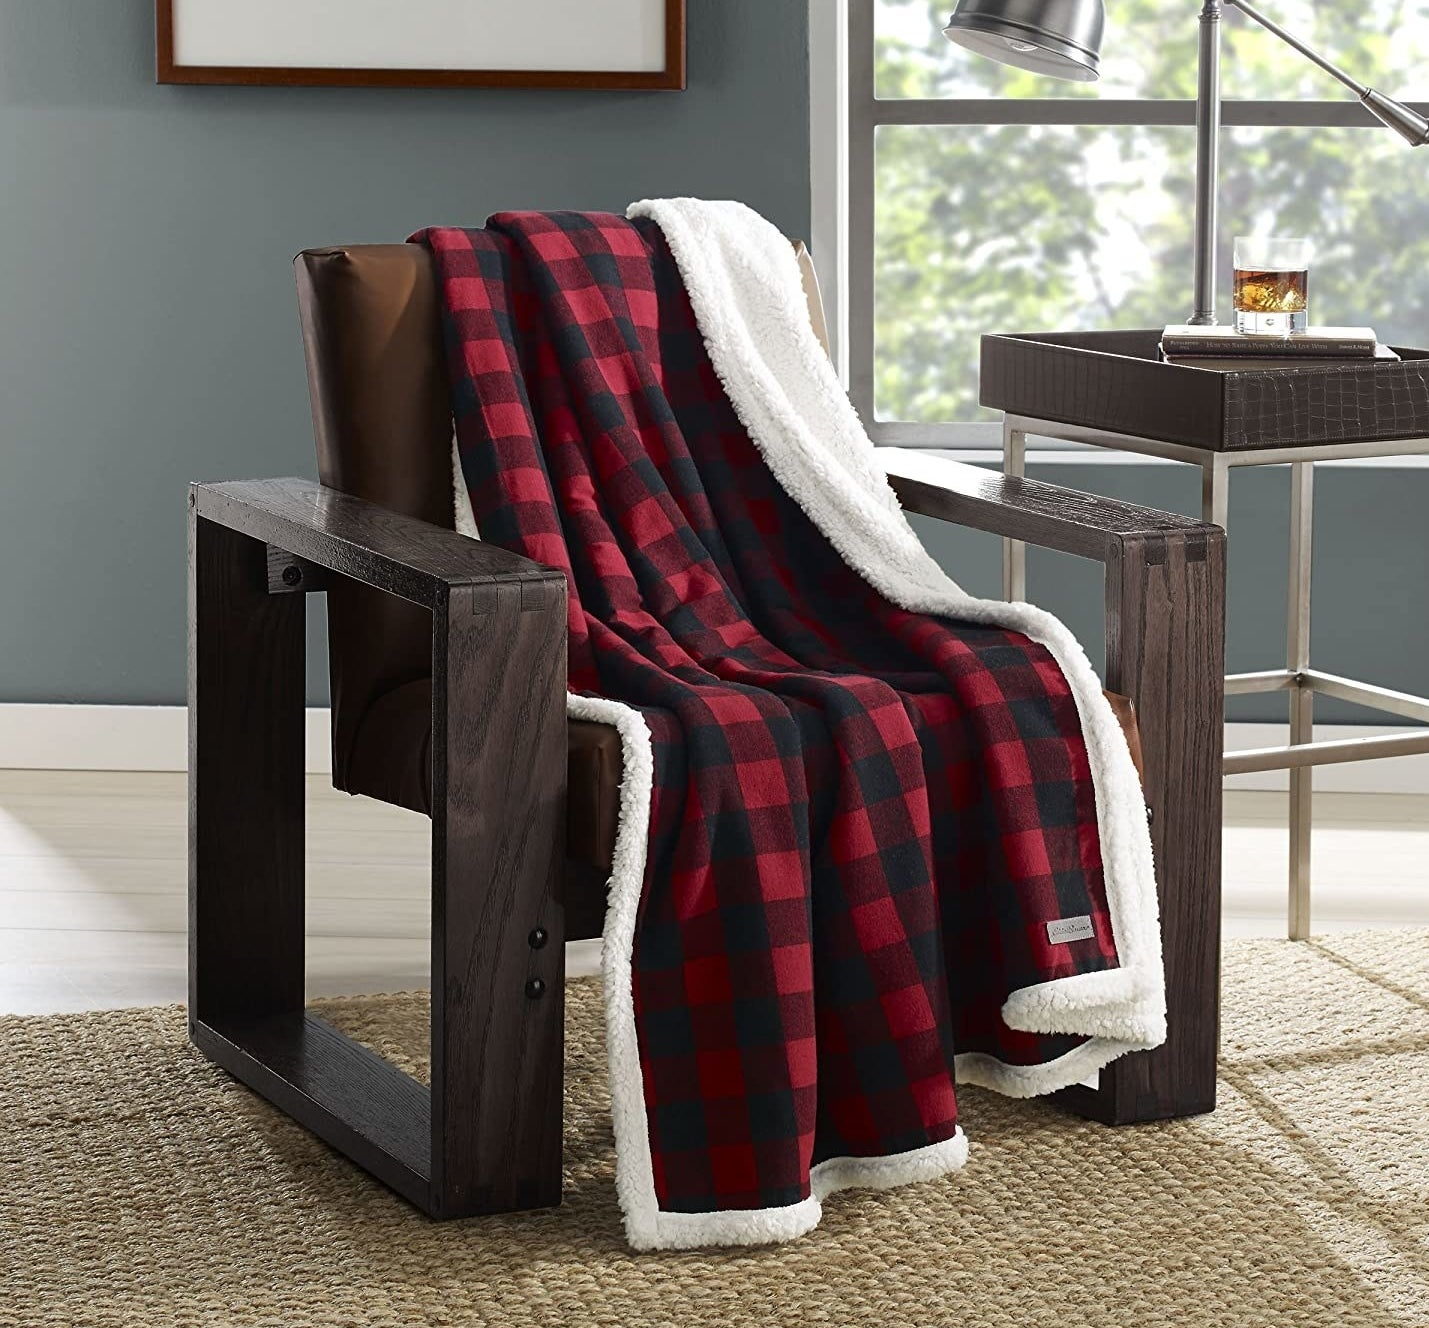 A cozy flannel blanket draping over a big chair